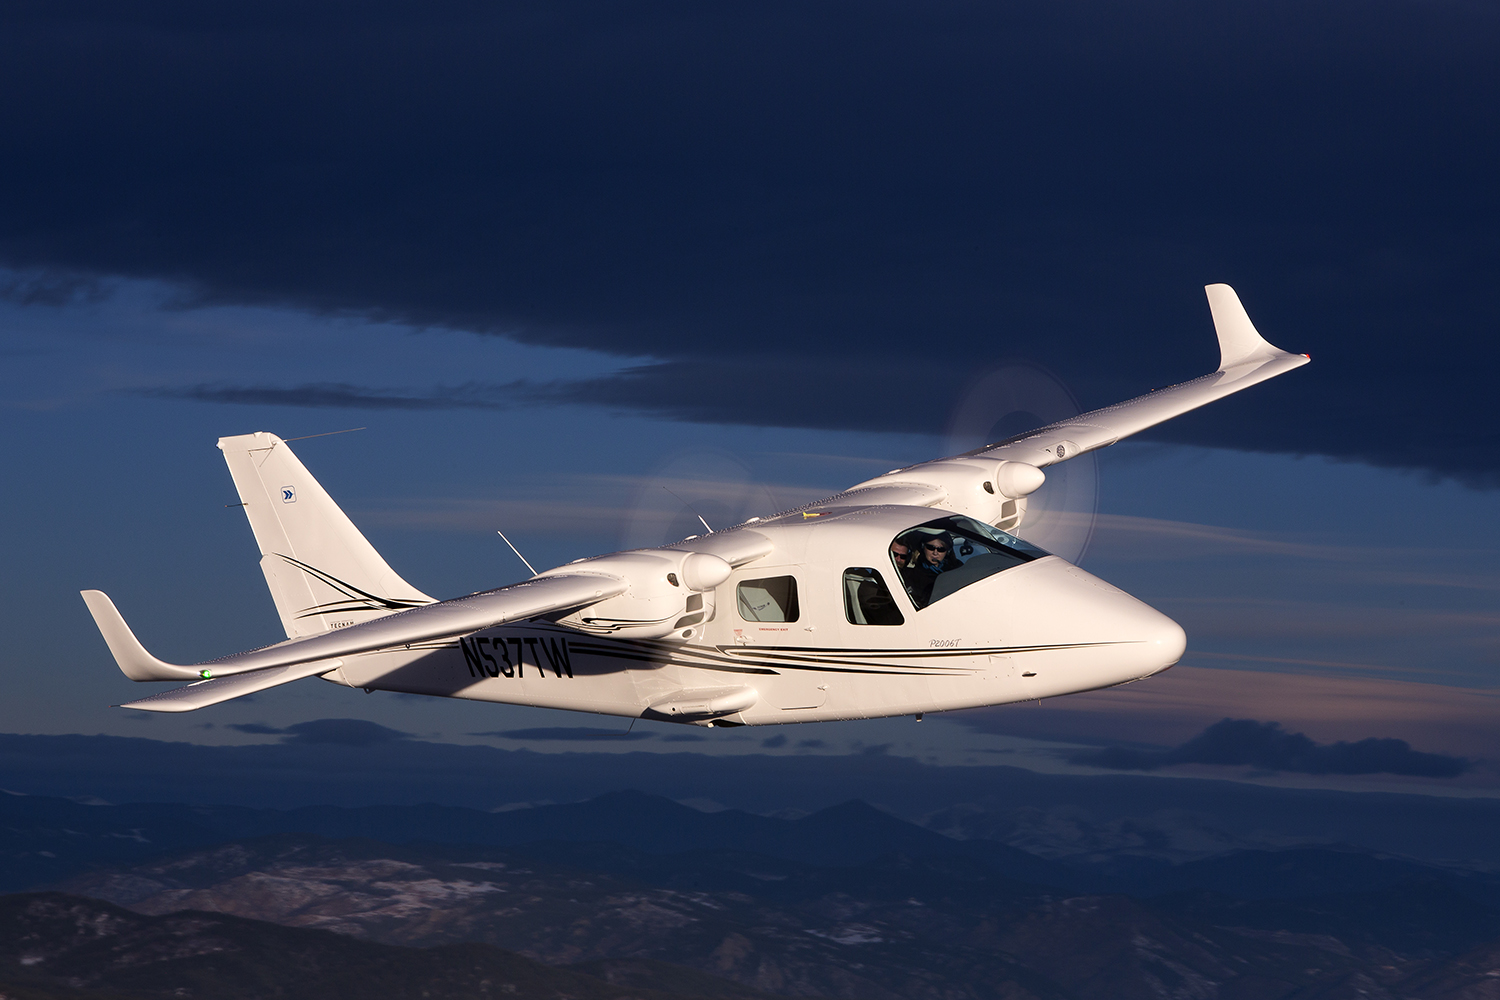 Tecnam P2006T by Mitch Bowers